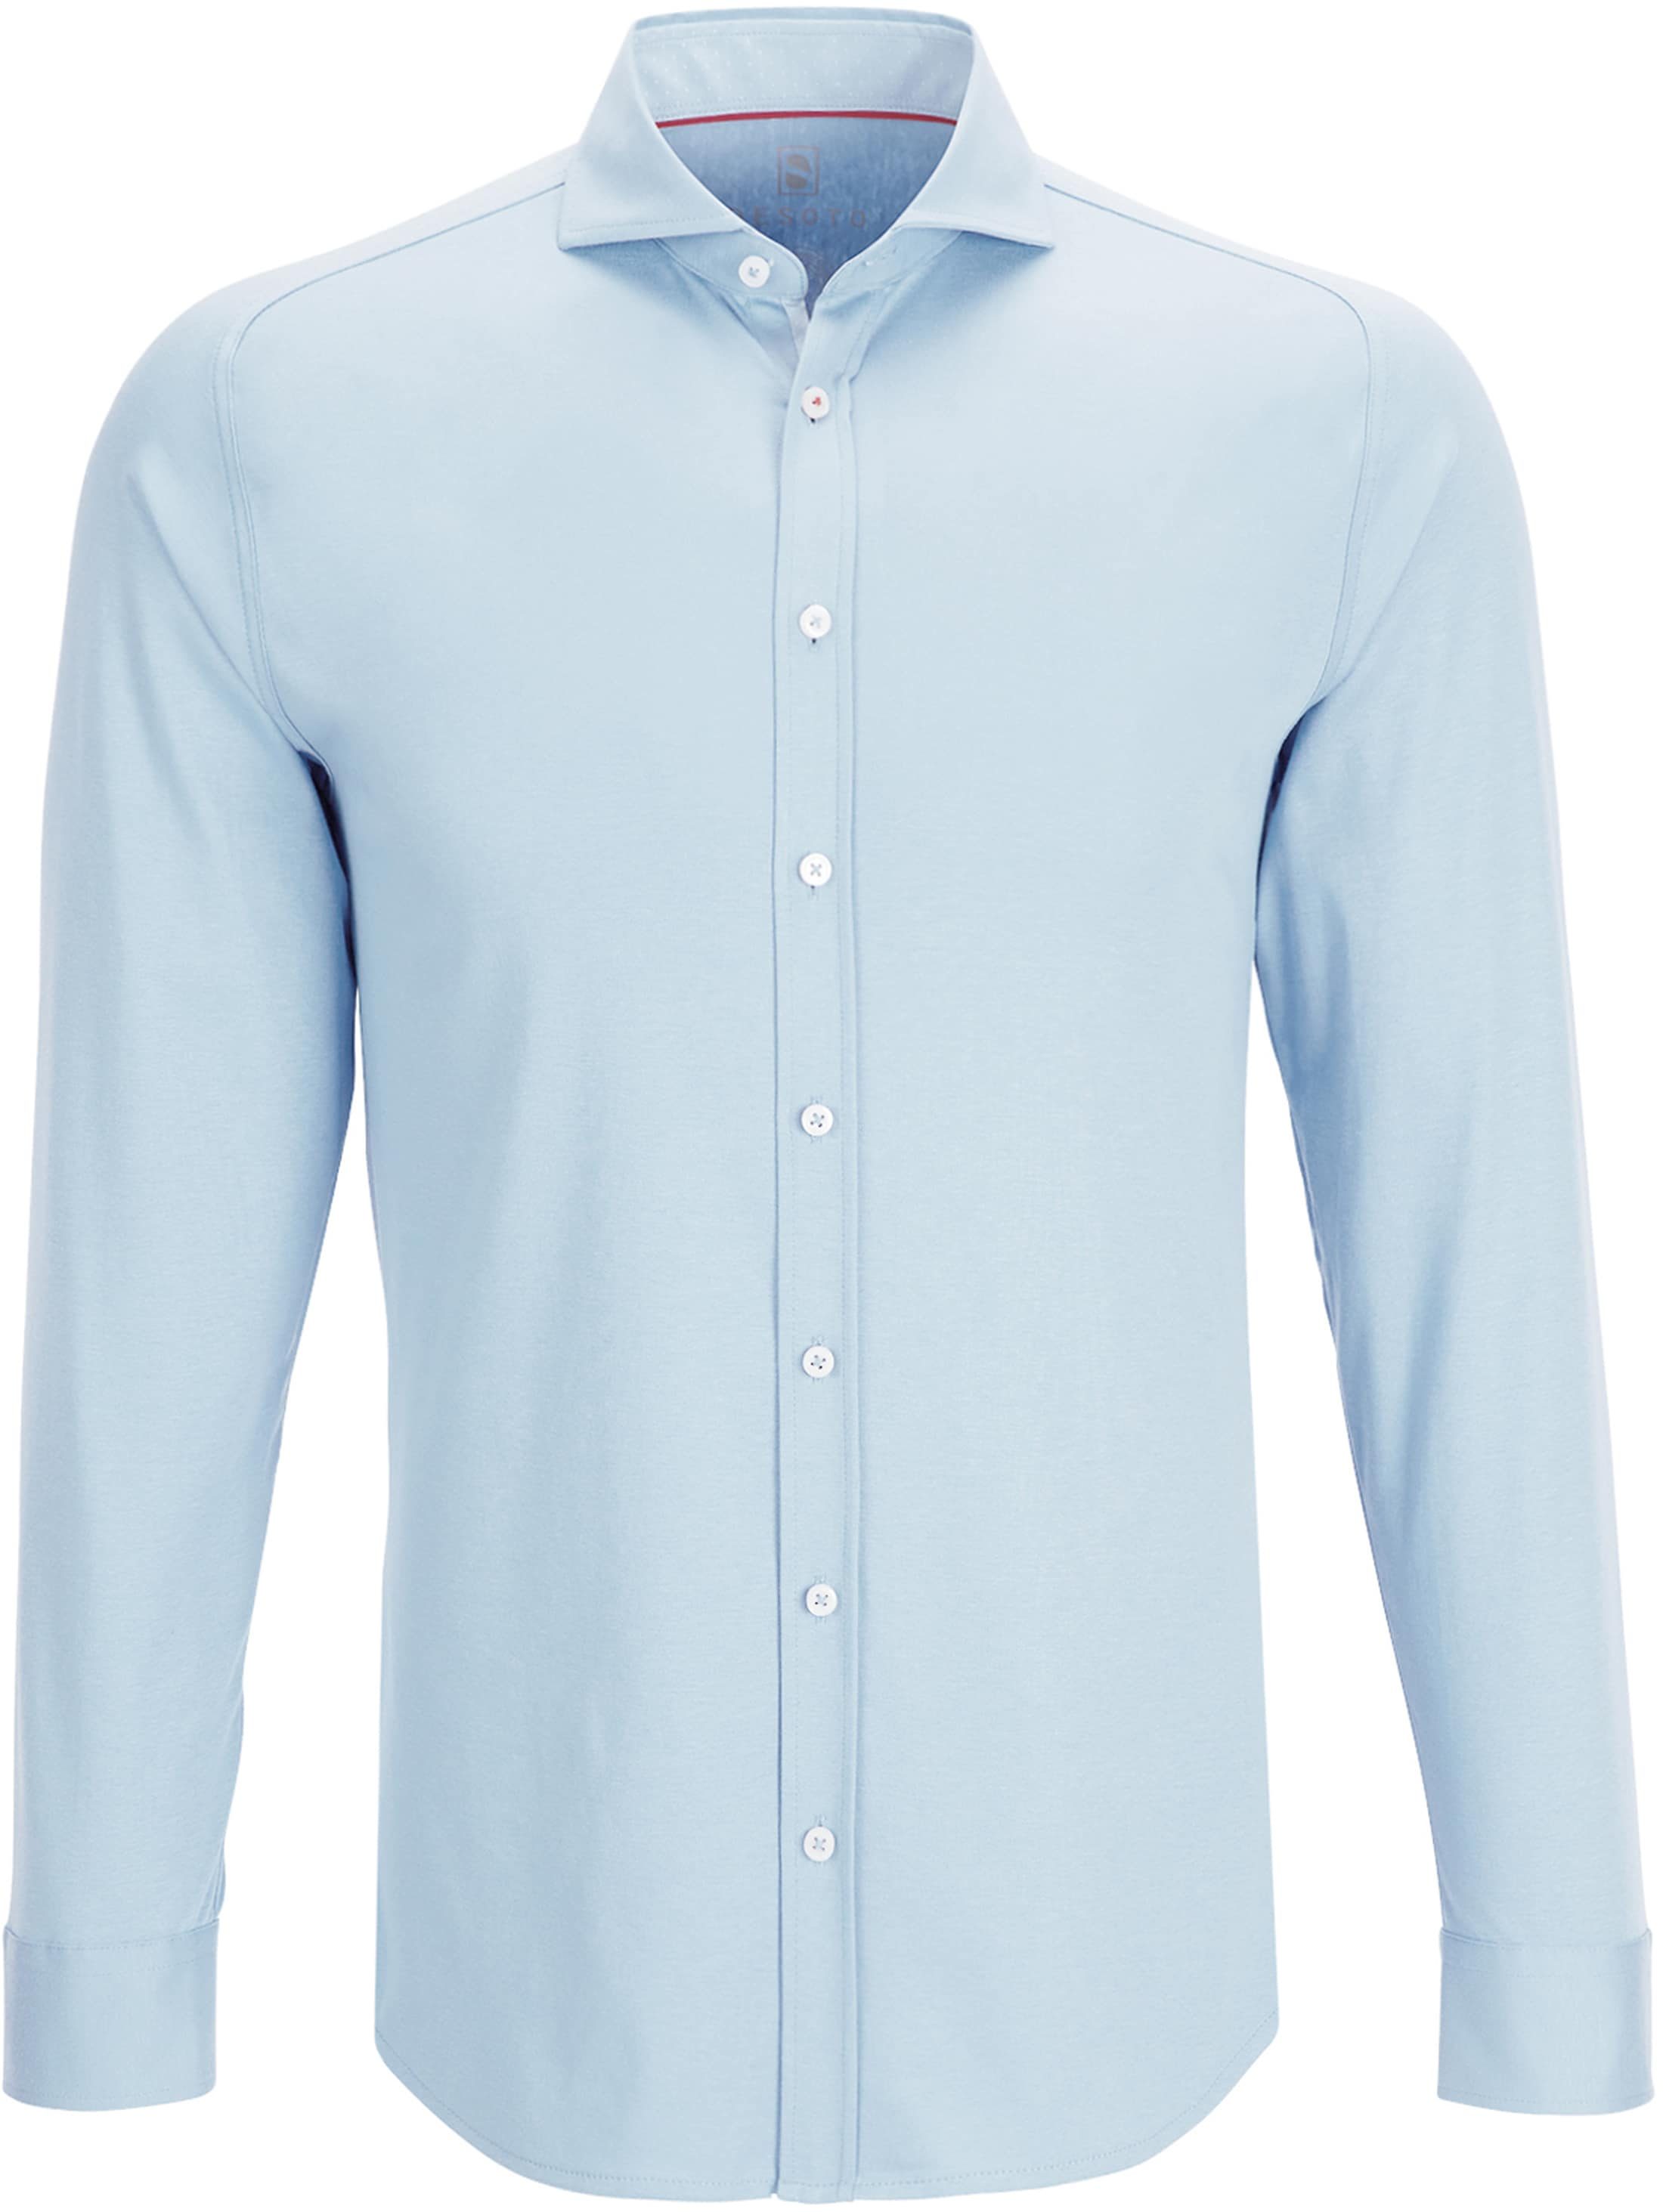 Desoto Shirt Non Iron Light Blue 051 foto 0